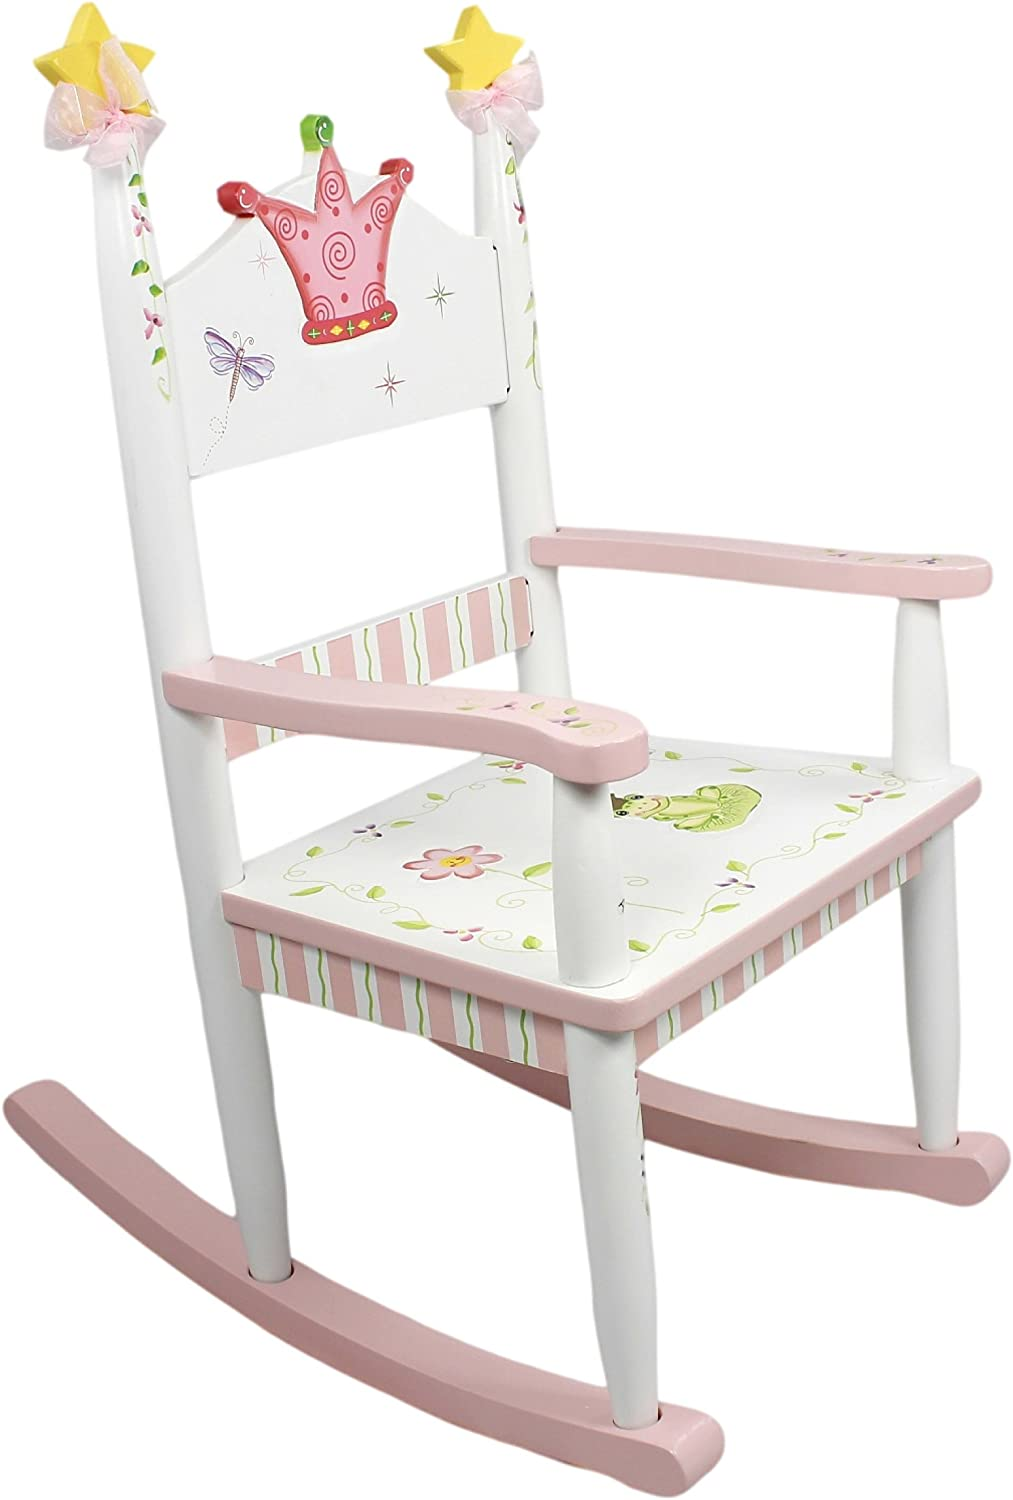 Fantasy Fields - Princess & Frog Thematic Kids Wooden Rocking Chair   Imagination Inspiring Hand Crafted & Hand Painted Details   Non-Toxic, Lead Free Water-based Paint